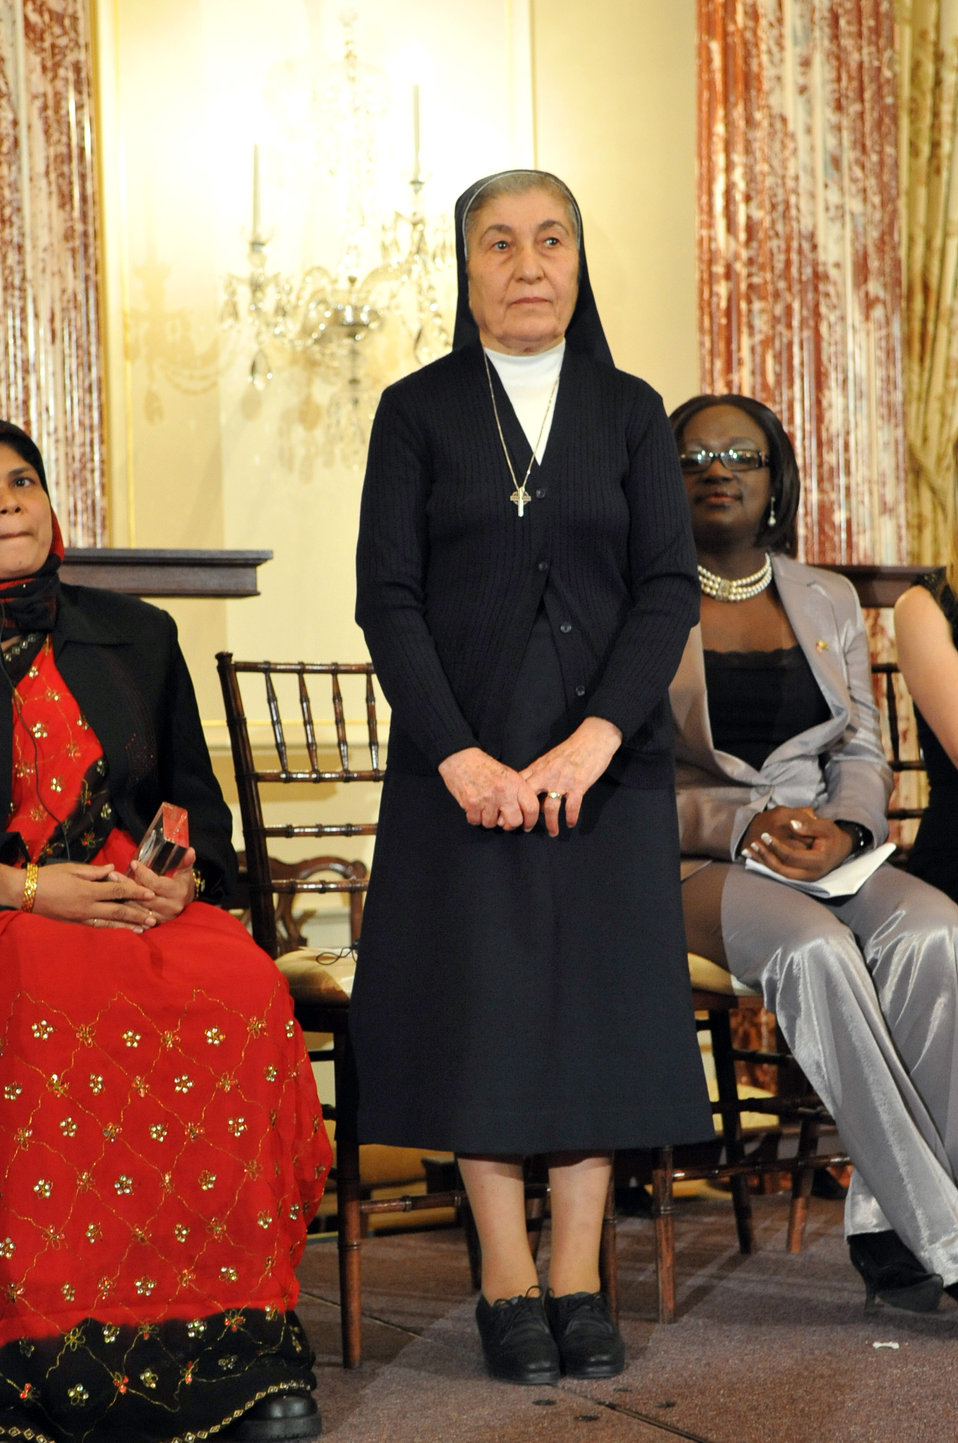 Sister Marie Claude Naddaf of Syria Stands